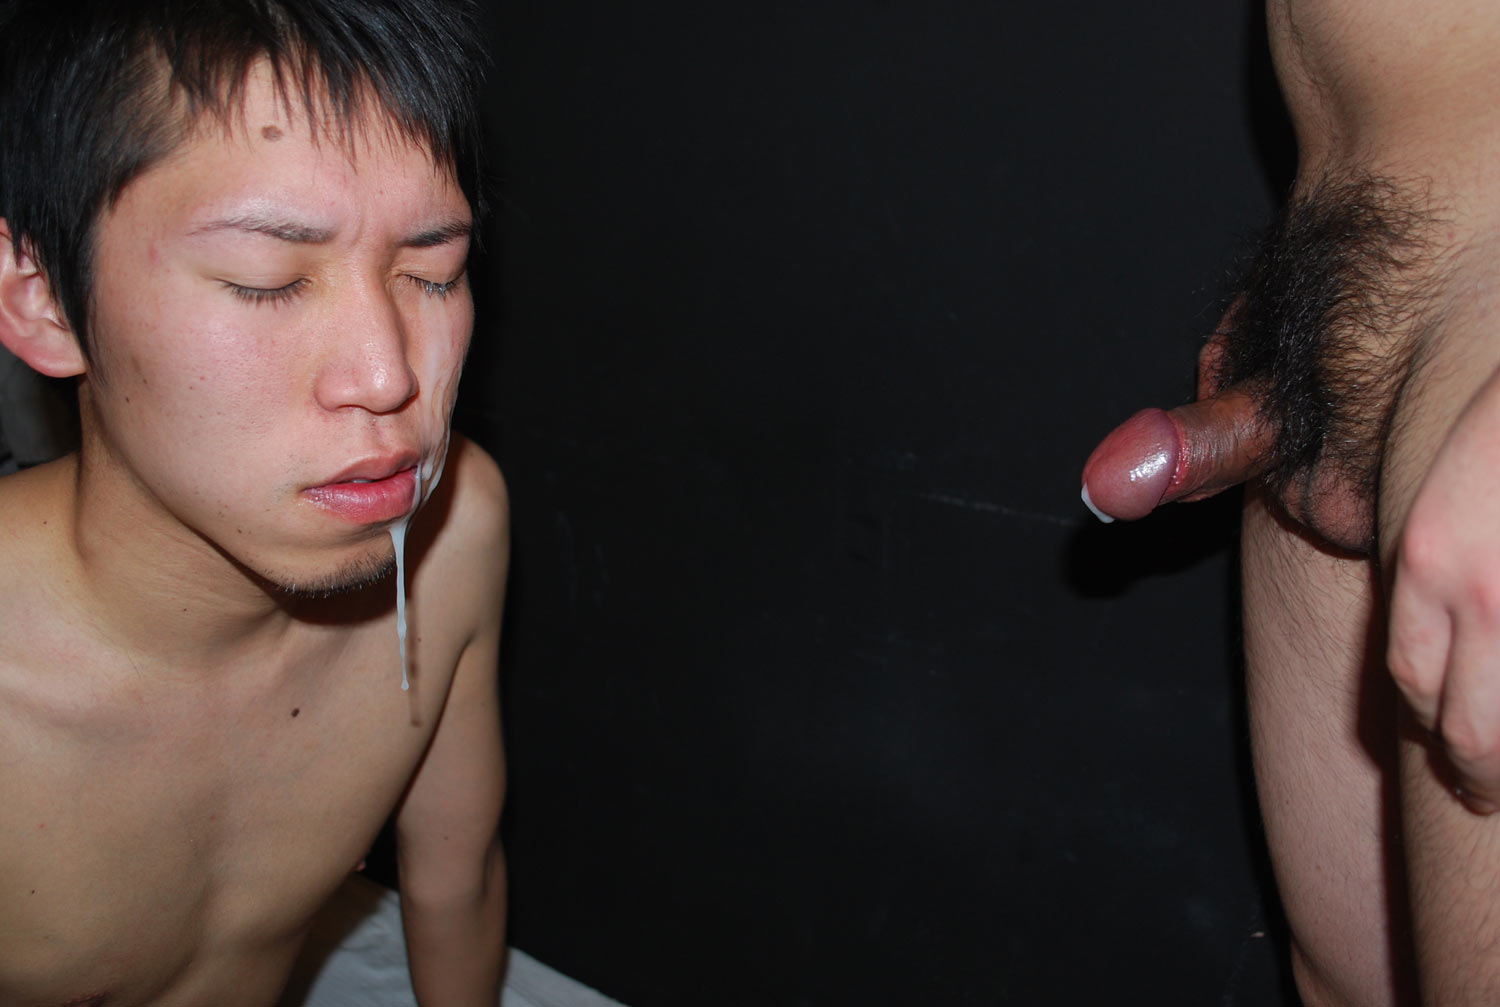 JapanBoyz Keisuke and Shinji Big Cock Asian Guys Give Each Other Cum Facial Amateur Gay Porn 19 Big Cock Asian Boys Give Each Other HUGE Cum Facials